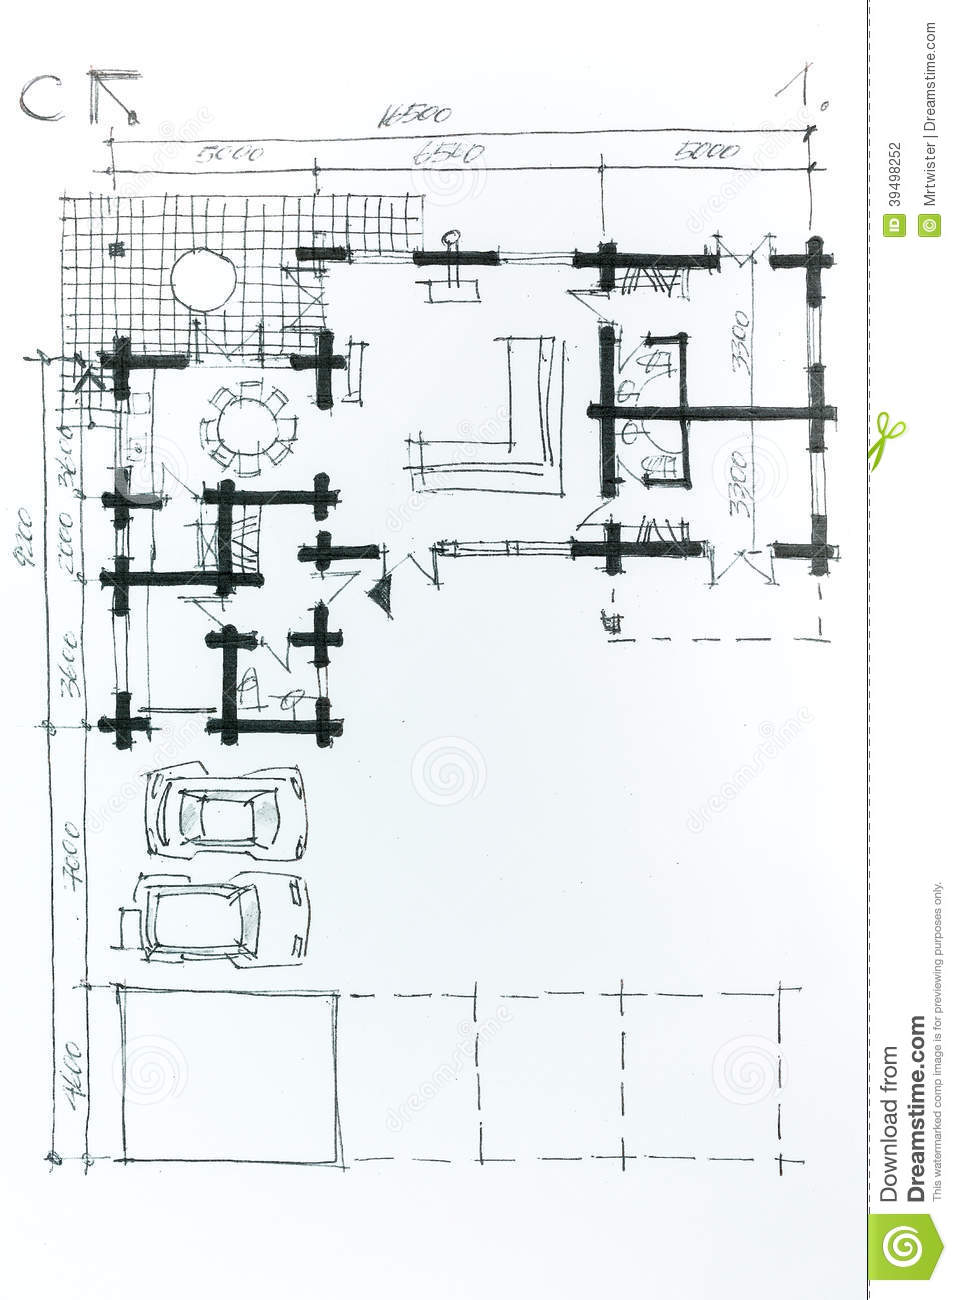 home plan drawing stock illustration image small house plans small house plans small house plans